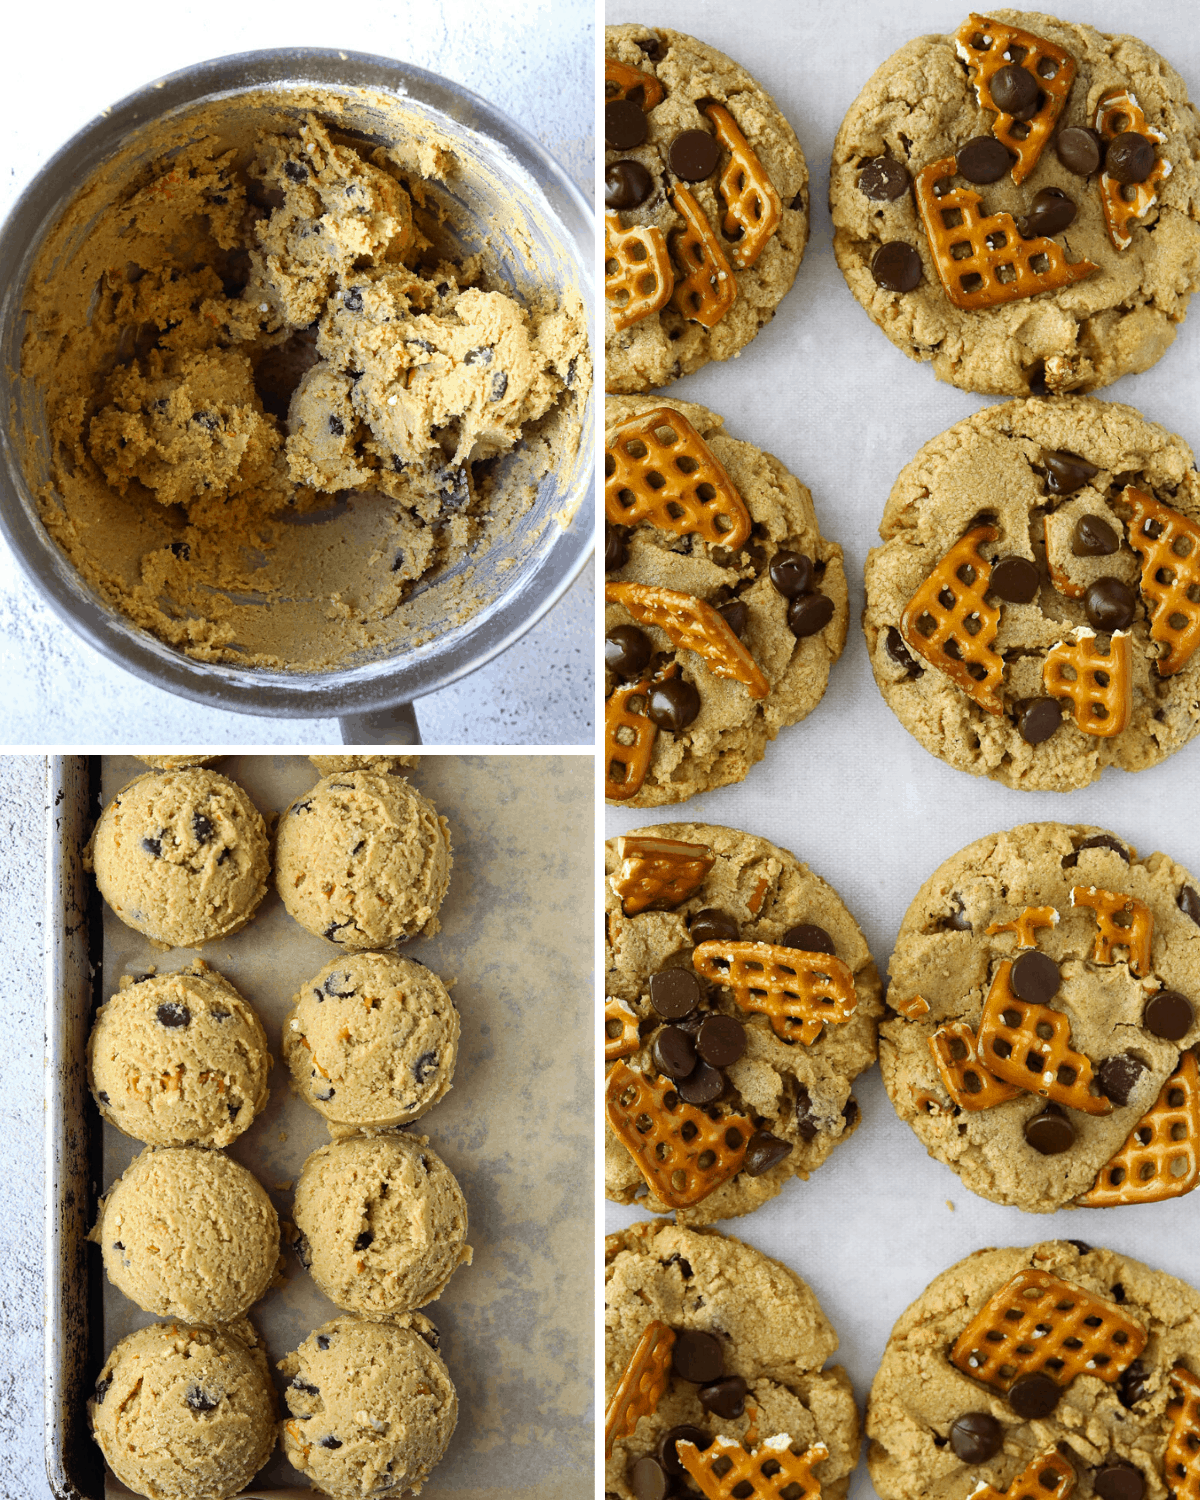 left, peanut butter chocolate chip cookie batter in a mixing bowl, right, two rows of baked cookies with chocolate and pretzels